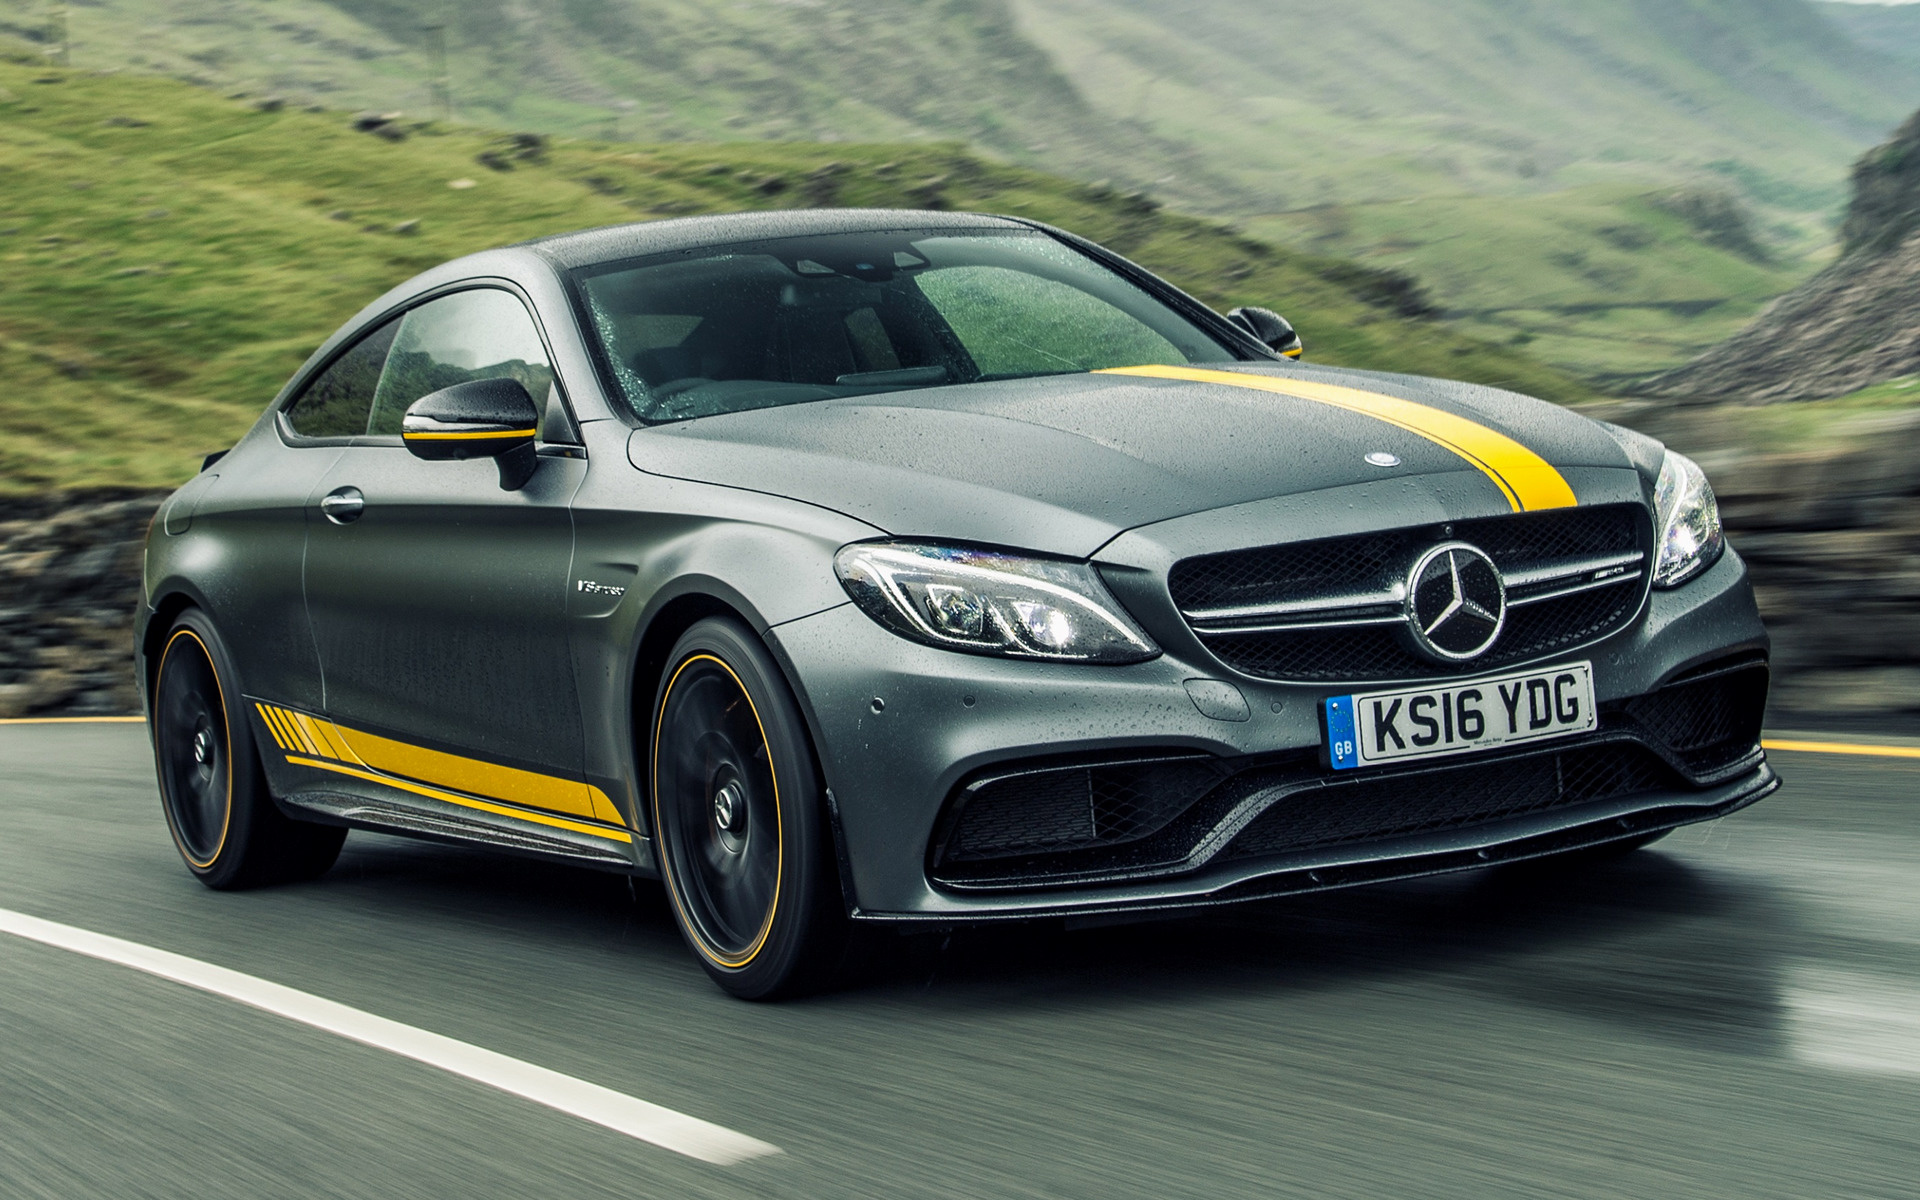 S 63 Amg together with 522558362988066930 together with The New Mercedes Amg Glc 63 Is The C63s Lifted Cousin as well 2017 A3 sportback e Tron in addition Bmw 5 Series Vs Mercedes E Class Vs Jaguar Xf Pictures. on jaguar e class